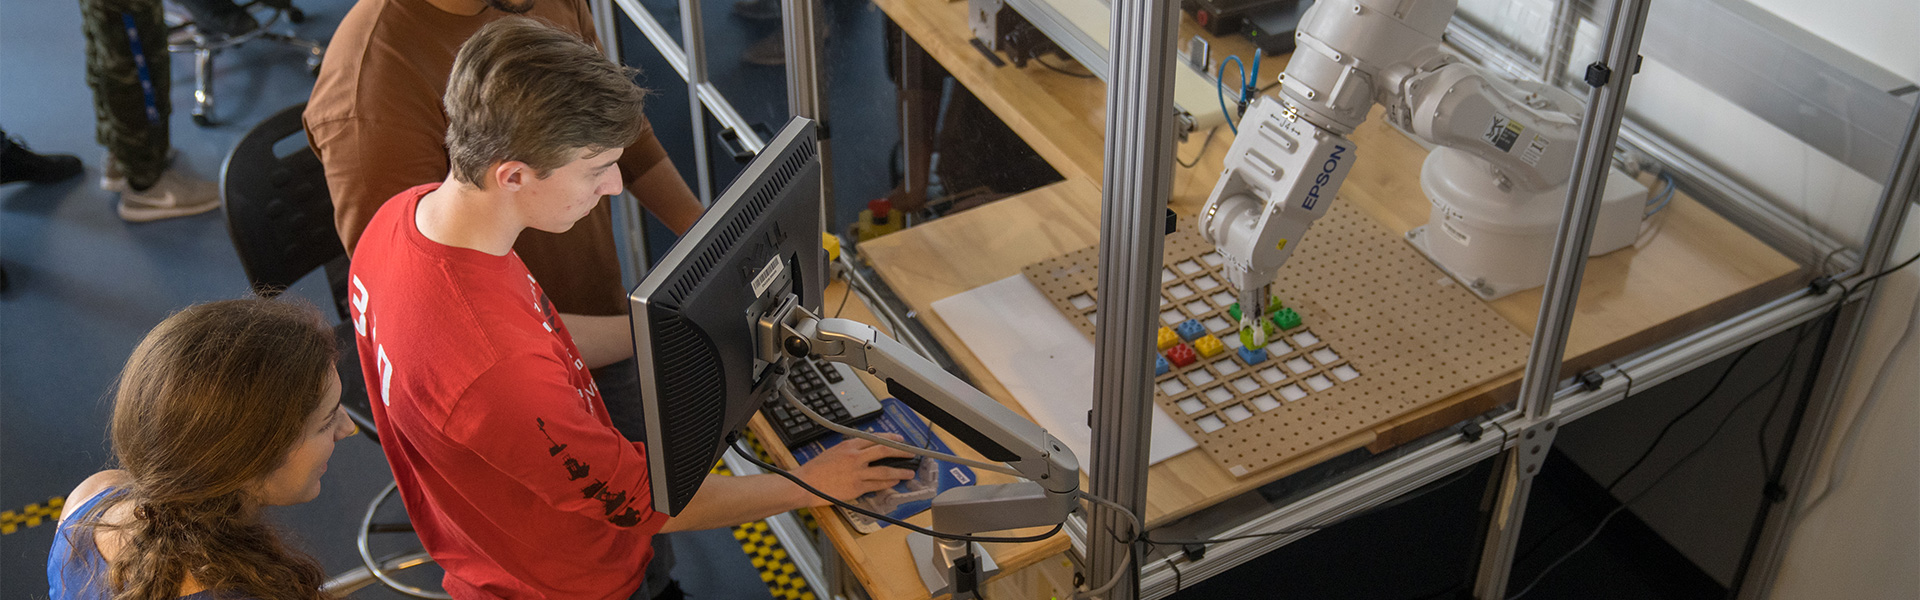 Students working with a robotic arm in a mechatronics lab